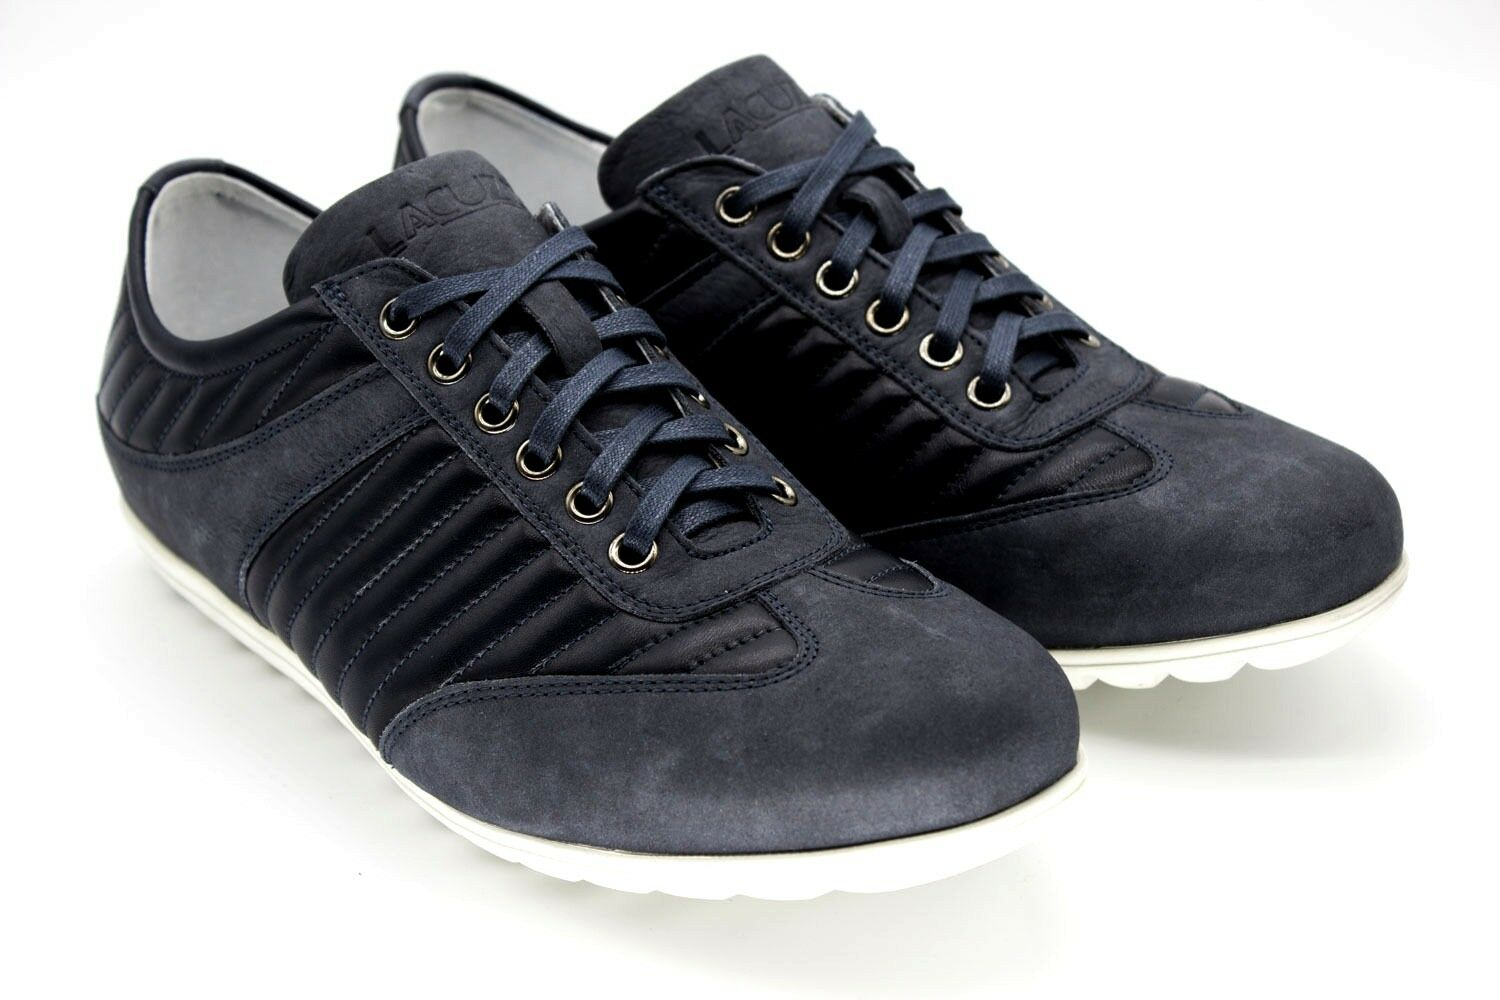 e95d48803e NEW ITALIAN DESIGNER MENS NAVY REL & SUEDE TRAINERS LEATHER *29 ...